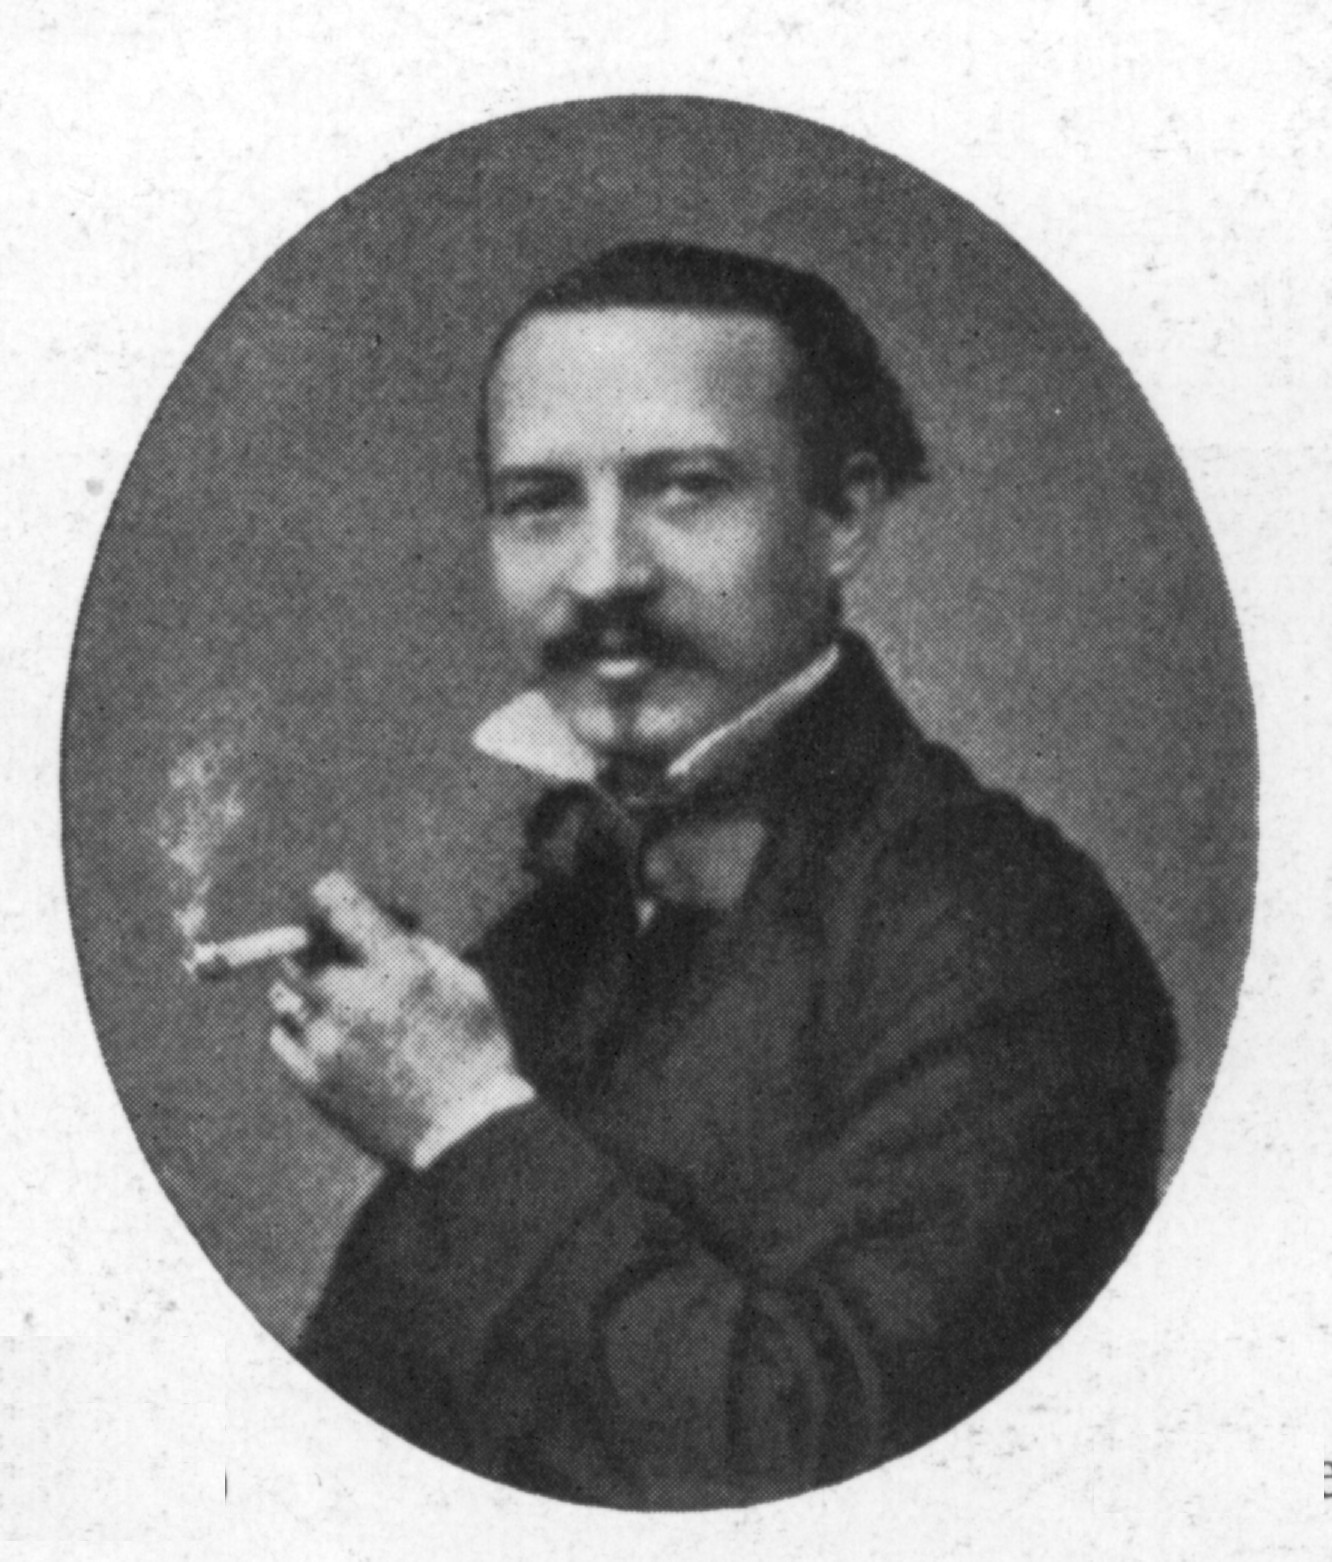 Image of Carl Dauthendey from Wikidata